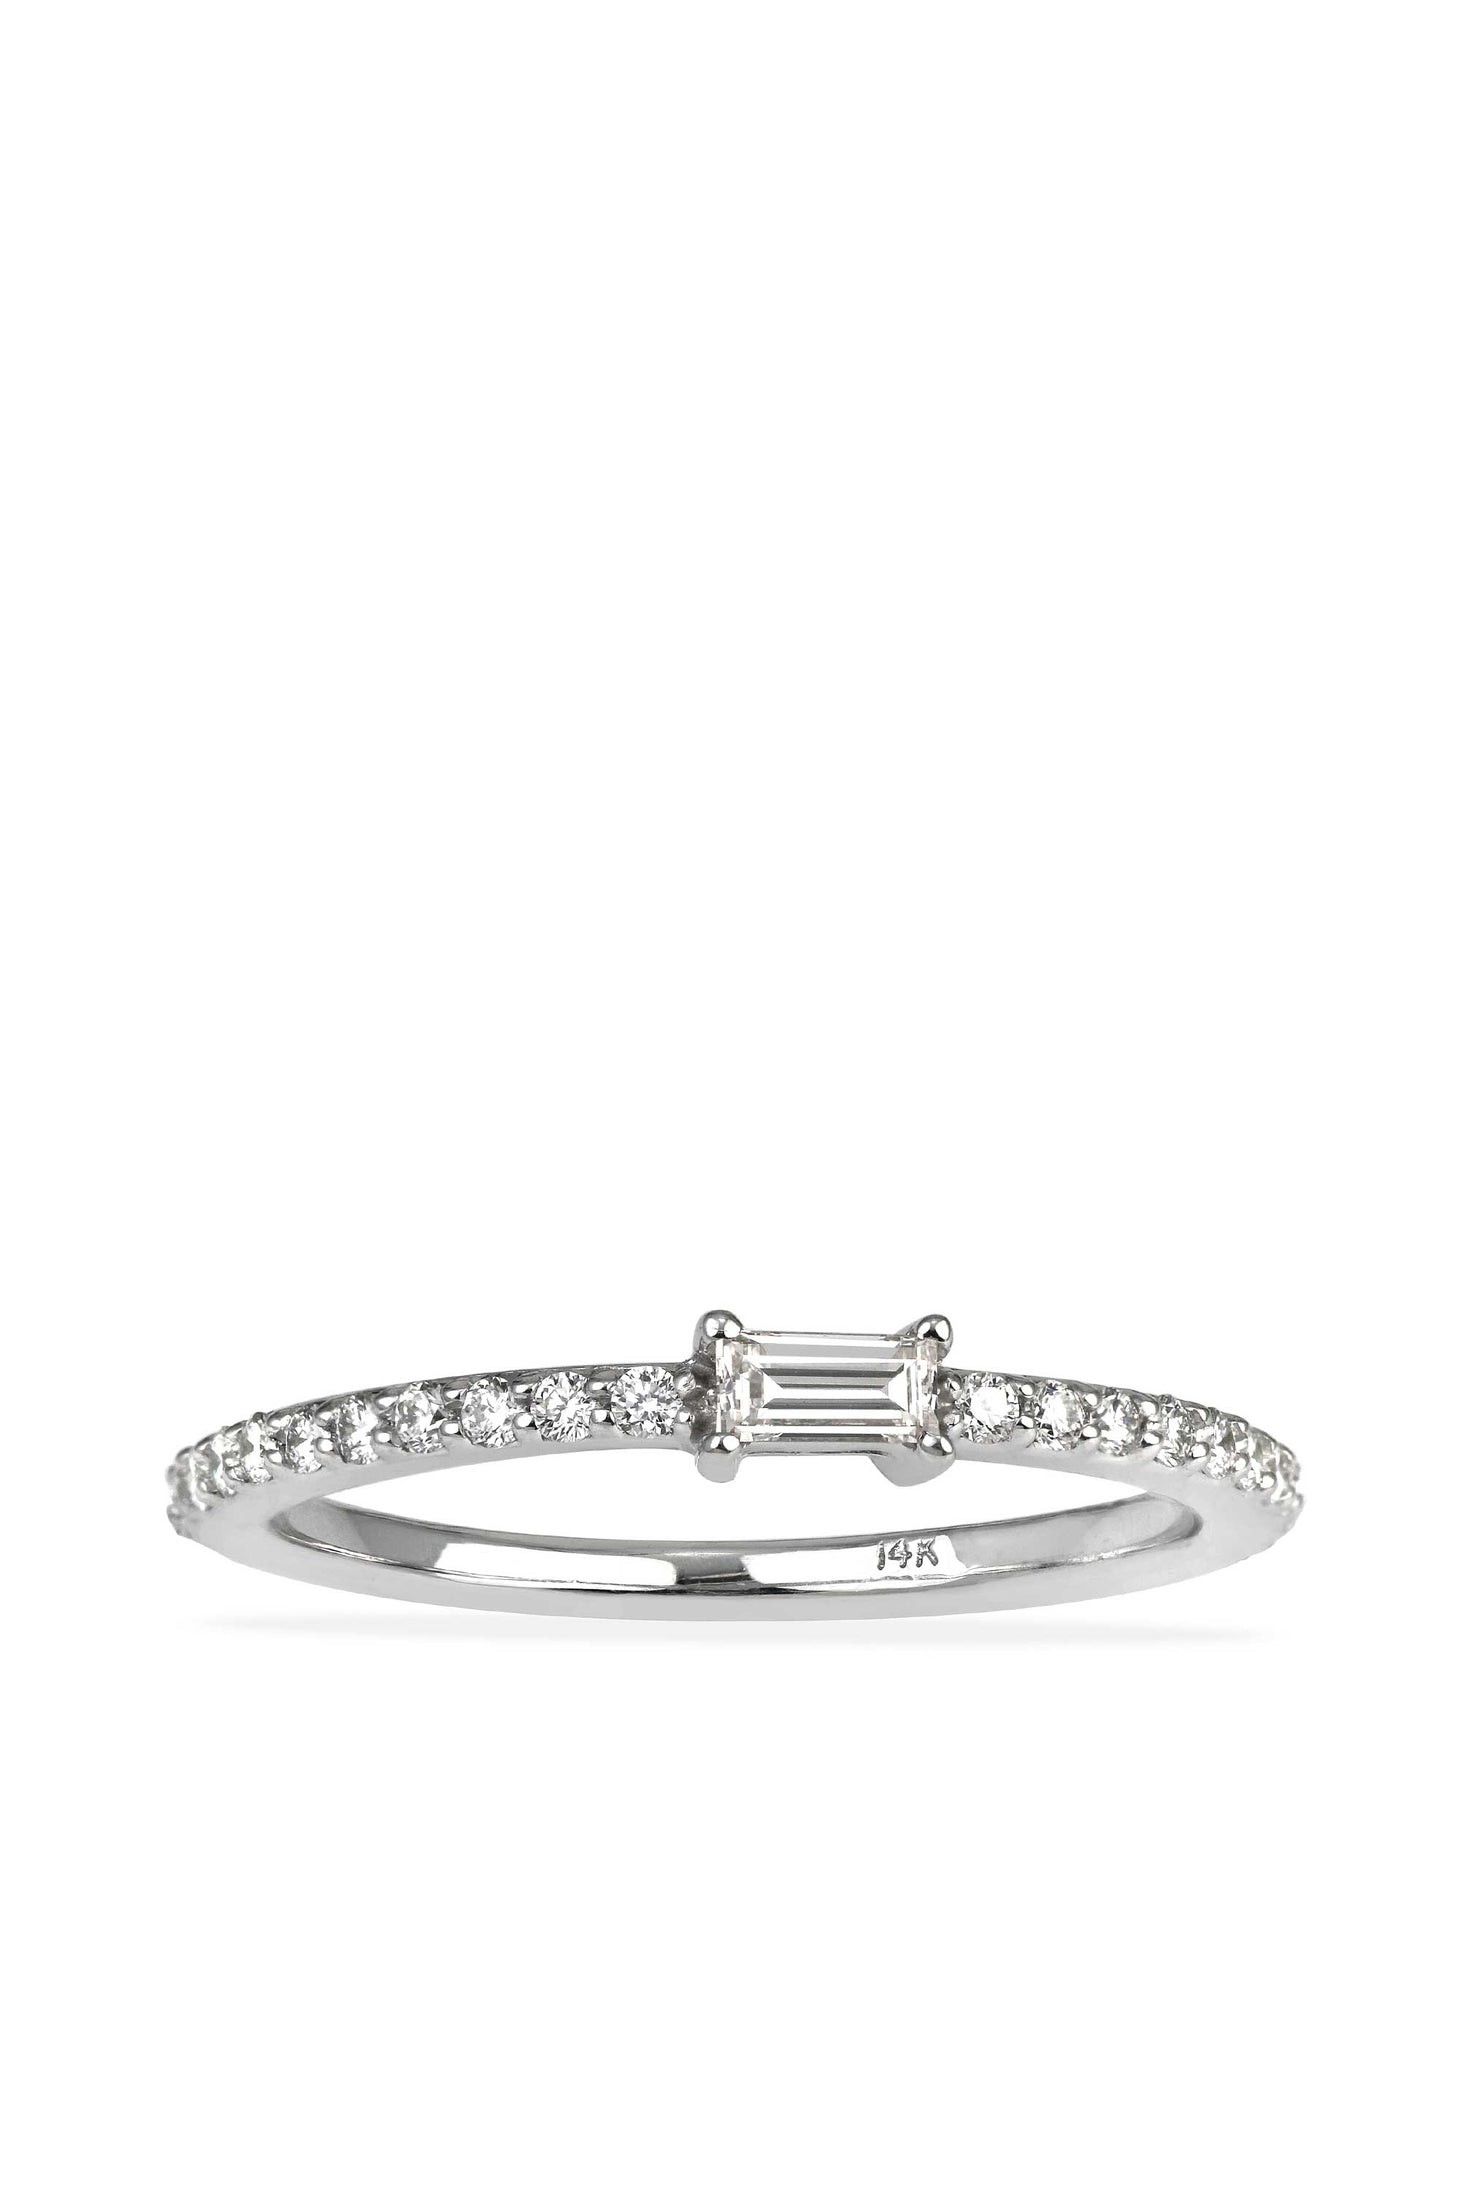 Esmerelda Ring in solid 14k white gold with white diamonds view 1